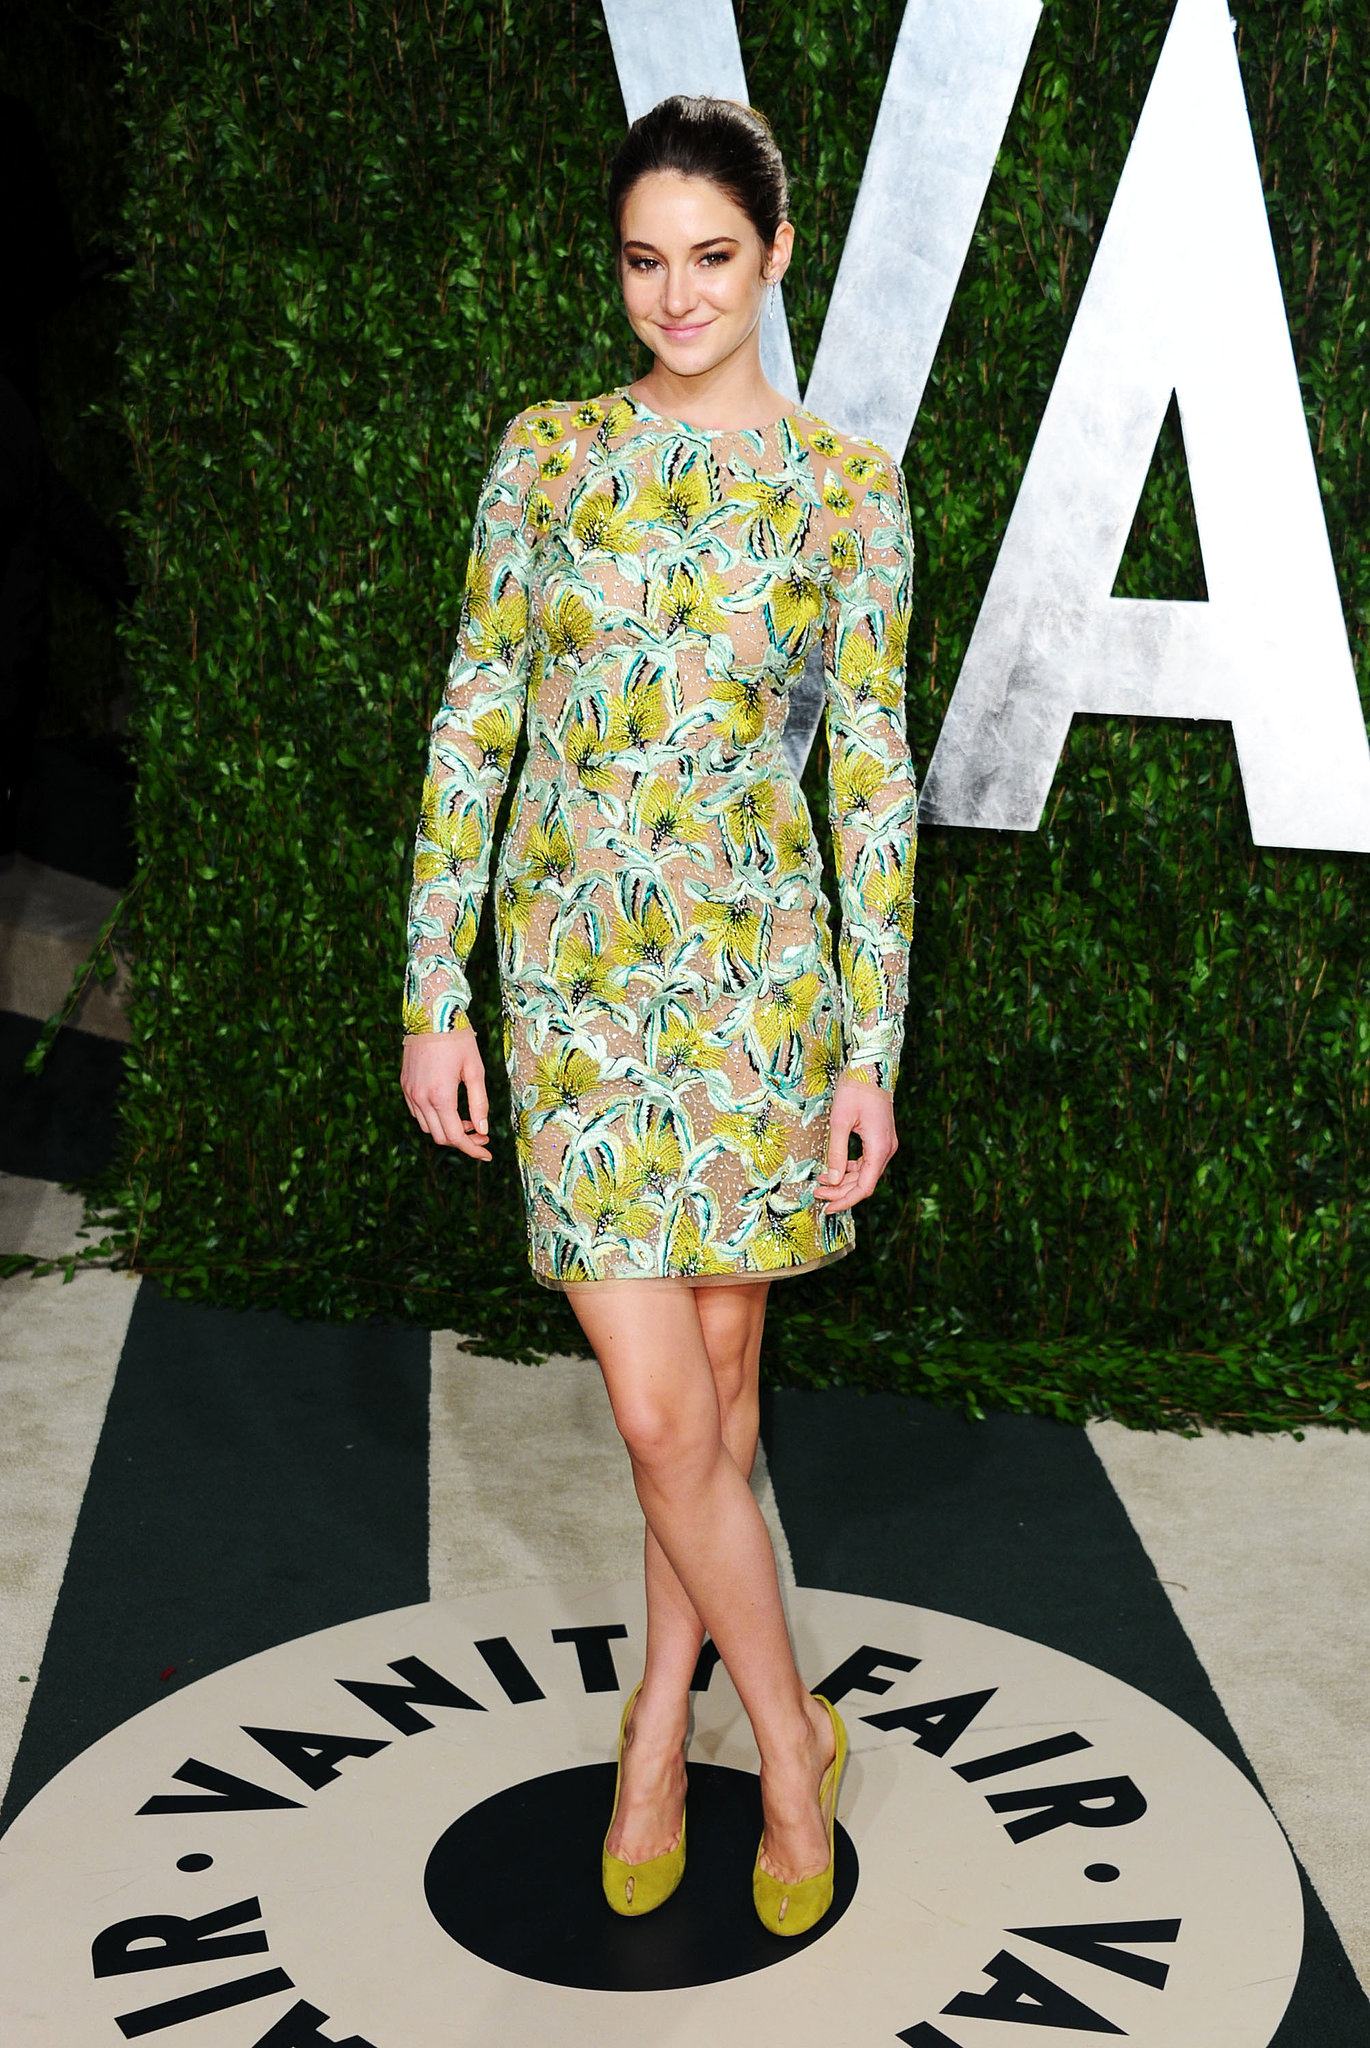 Shailene Woodley in Proenza Schouler at the 2012 Vanity Fair Oscars Party